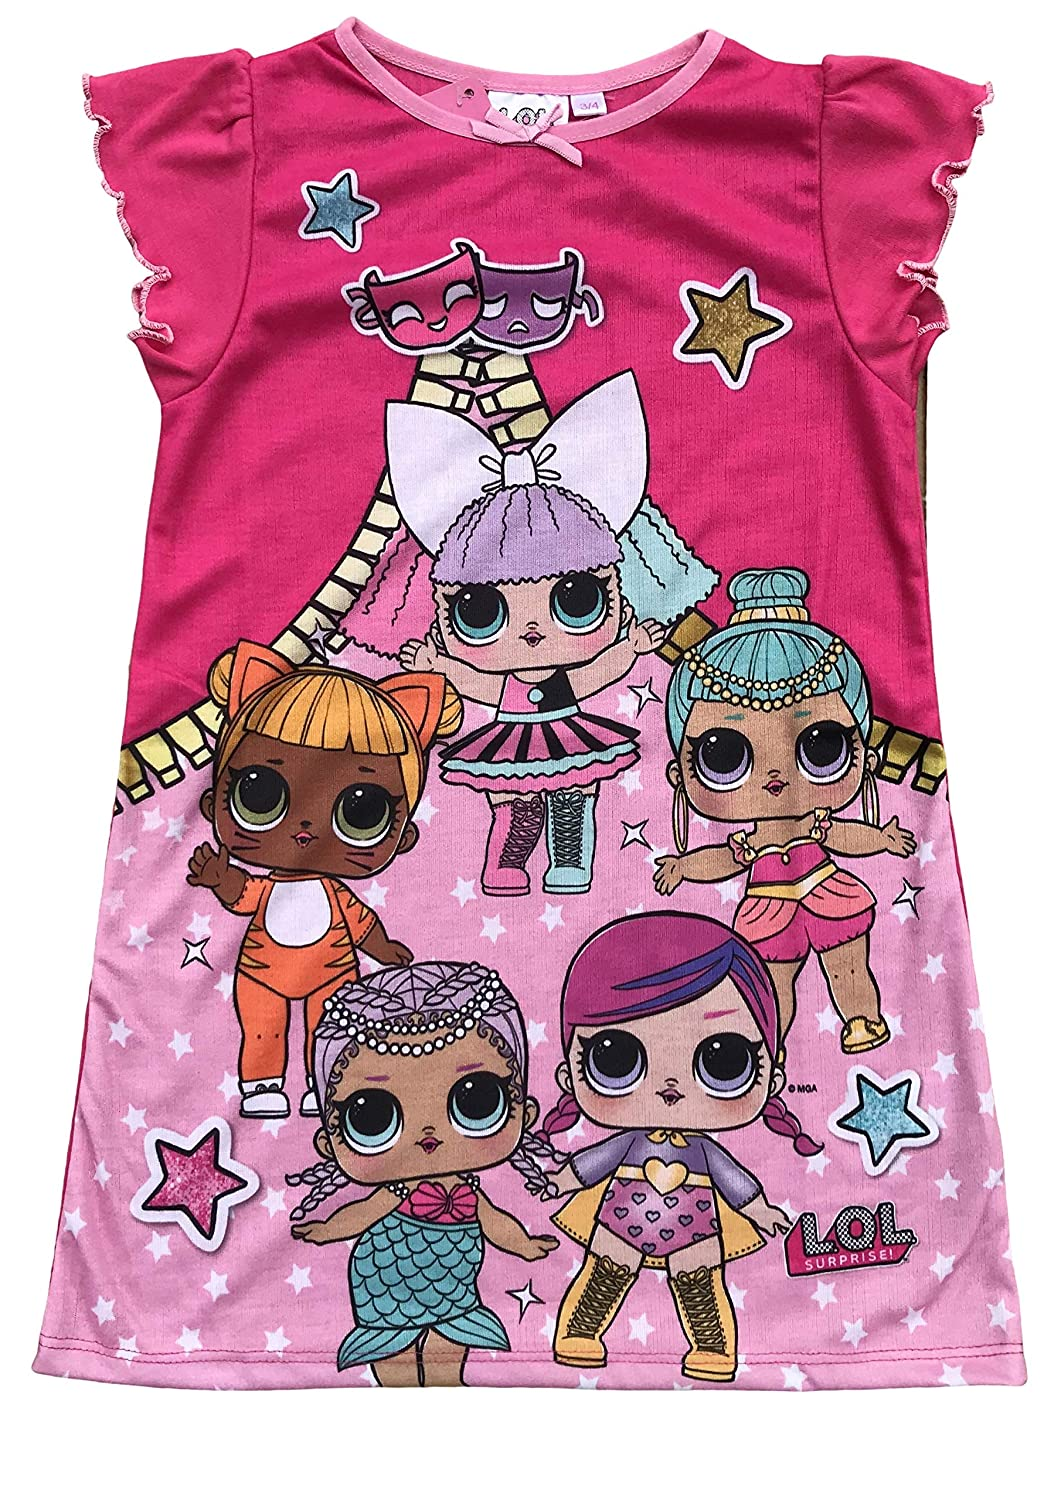 Girls Nightie LOL Surprise Paw Patrol My Little Pony Peter Rabbit Skye Kids Nightwear Ages 2 up to 8 Years